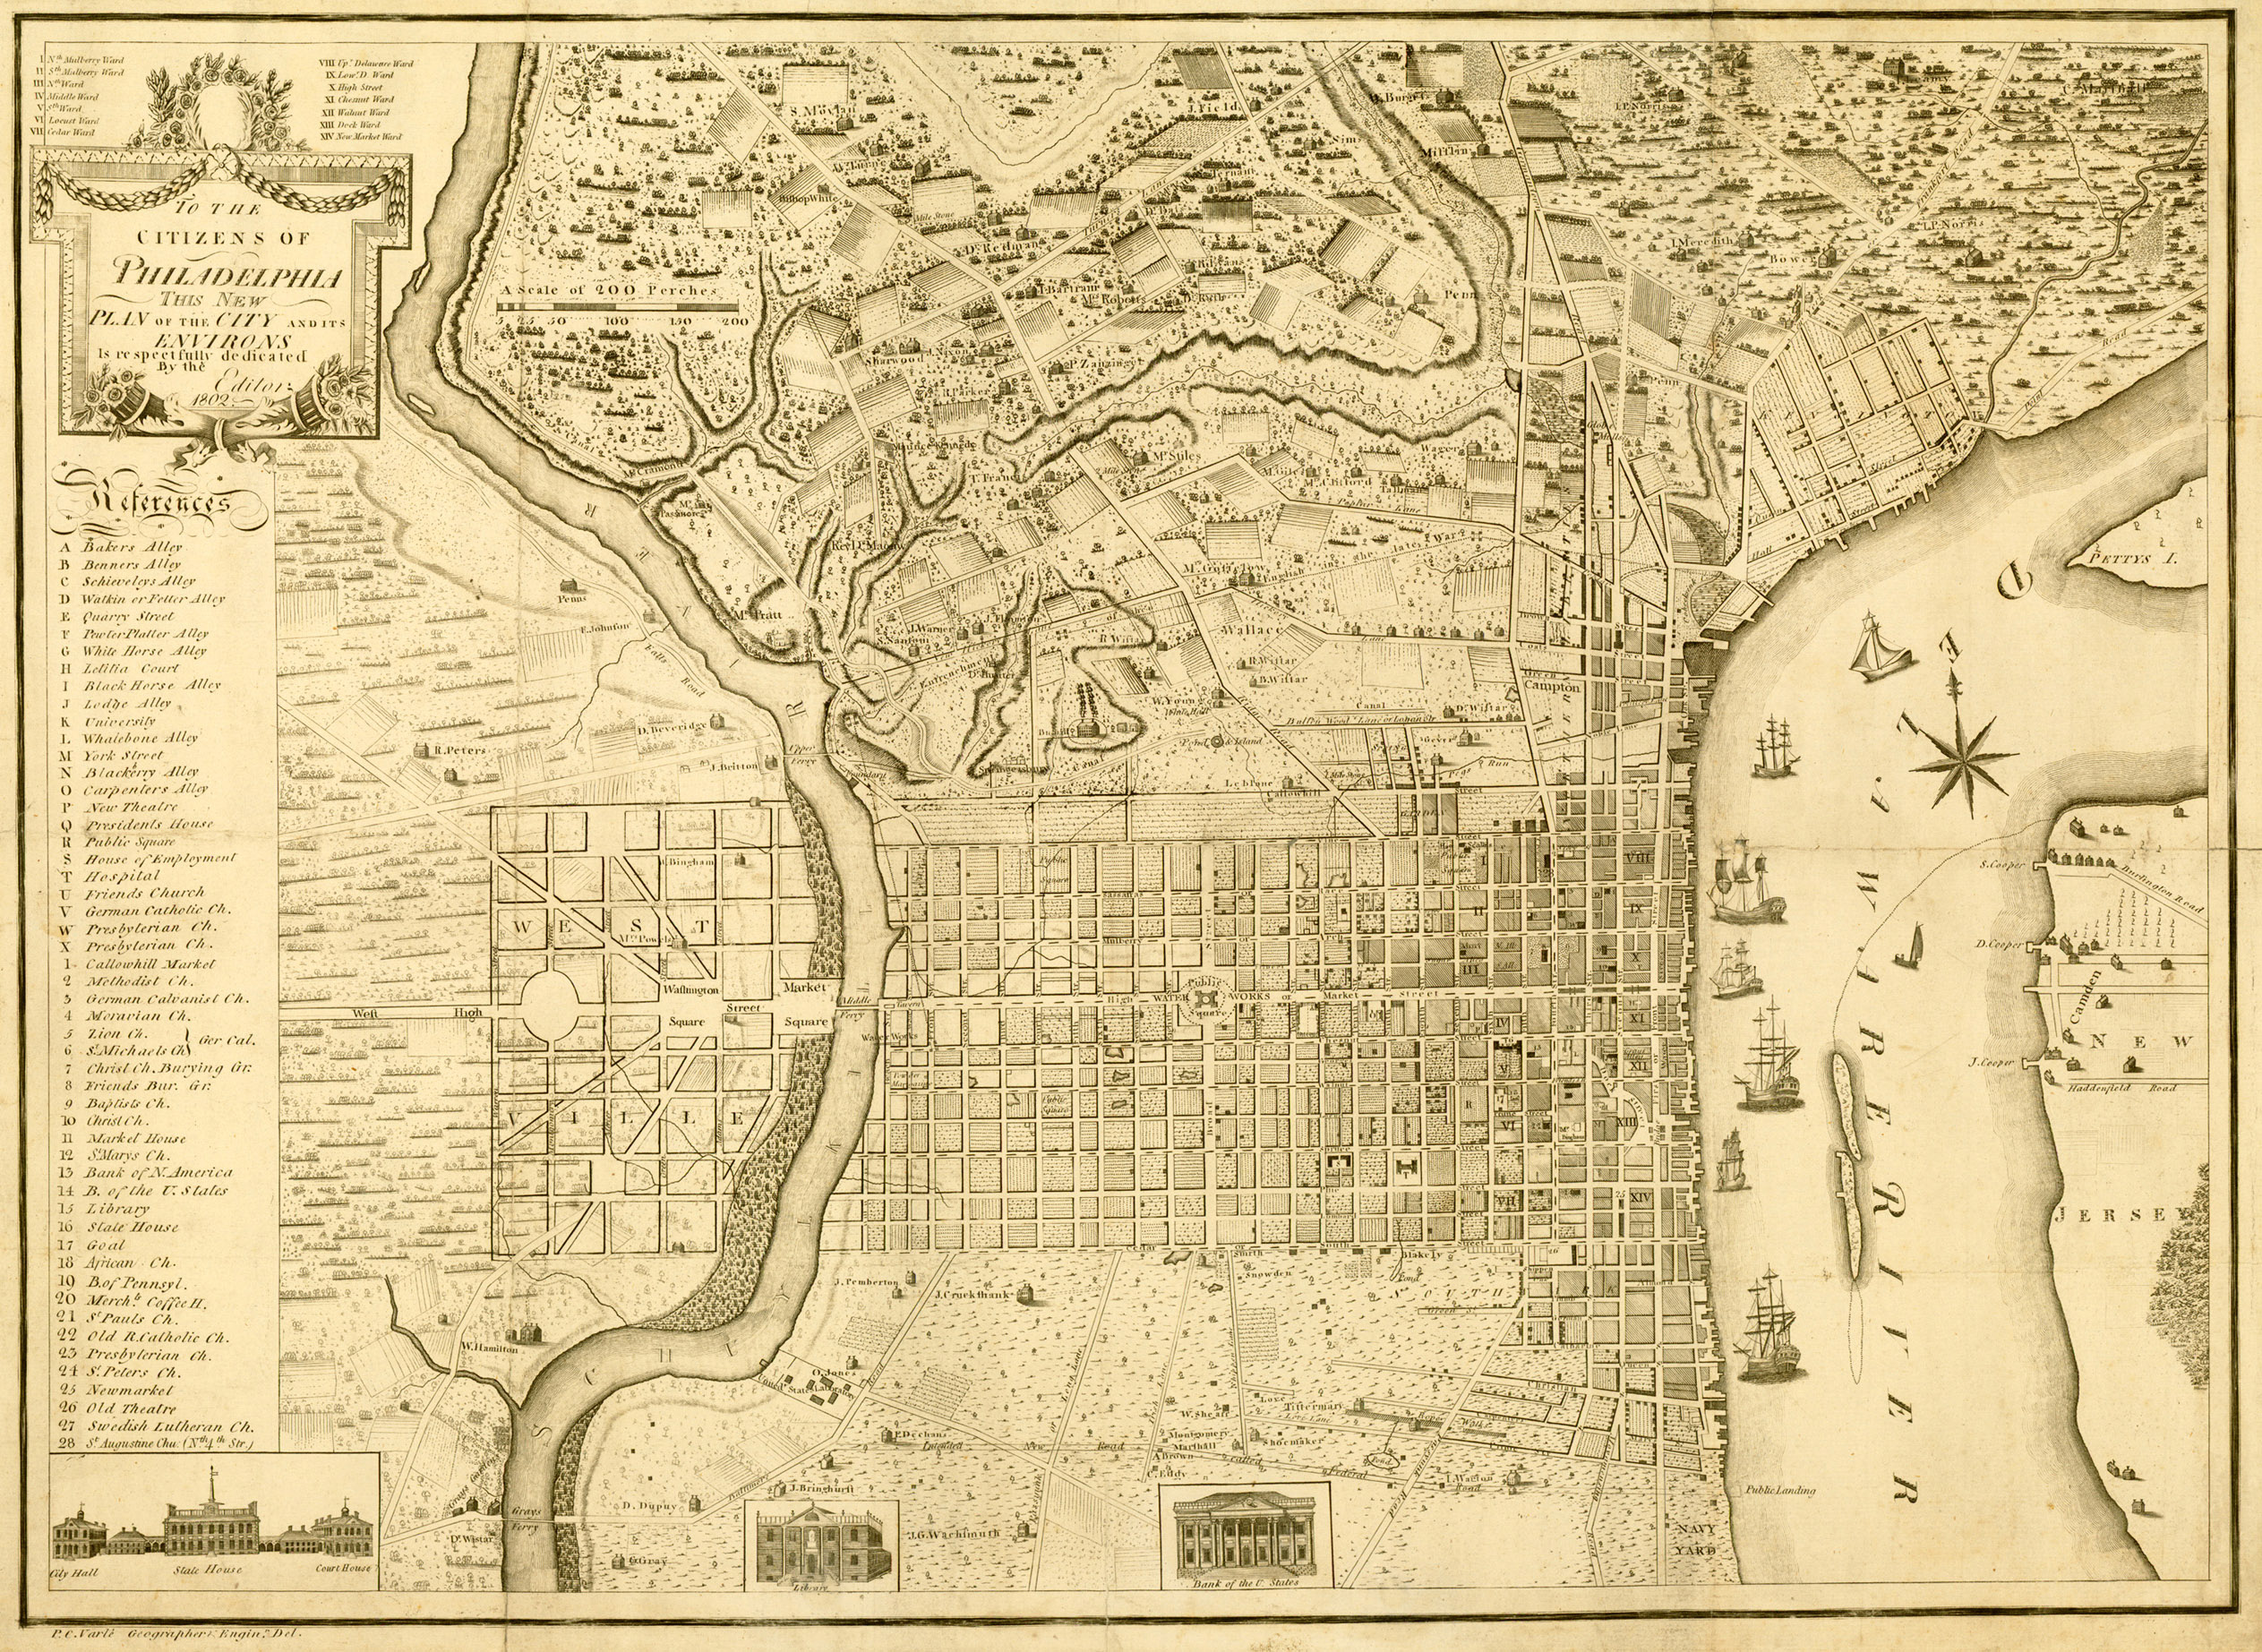 """1802 Idealized """"Plan"""" of West Philadelphia, by Charles P. Varle"""